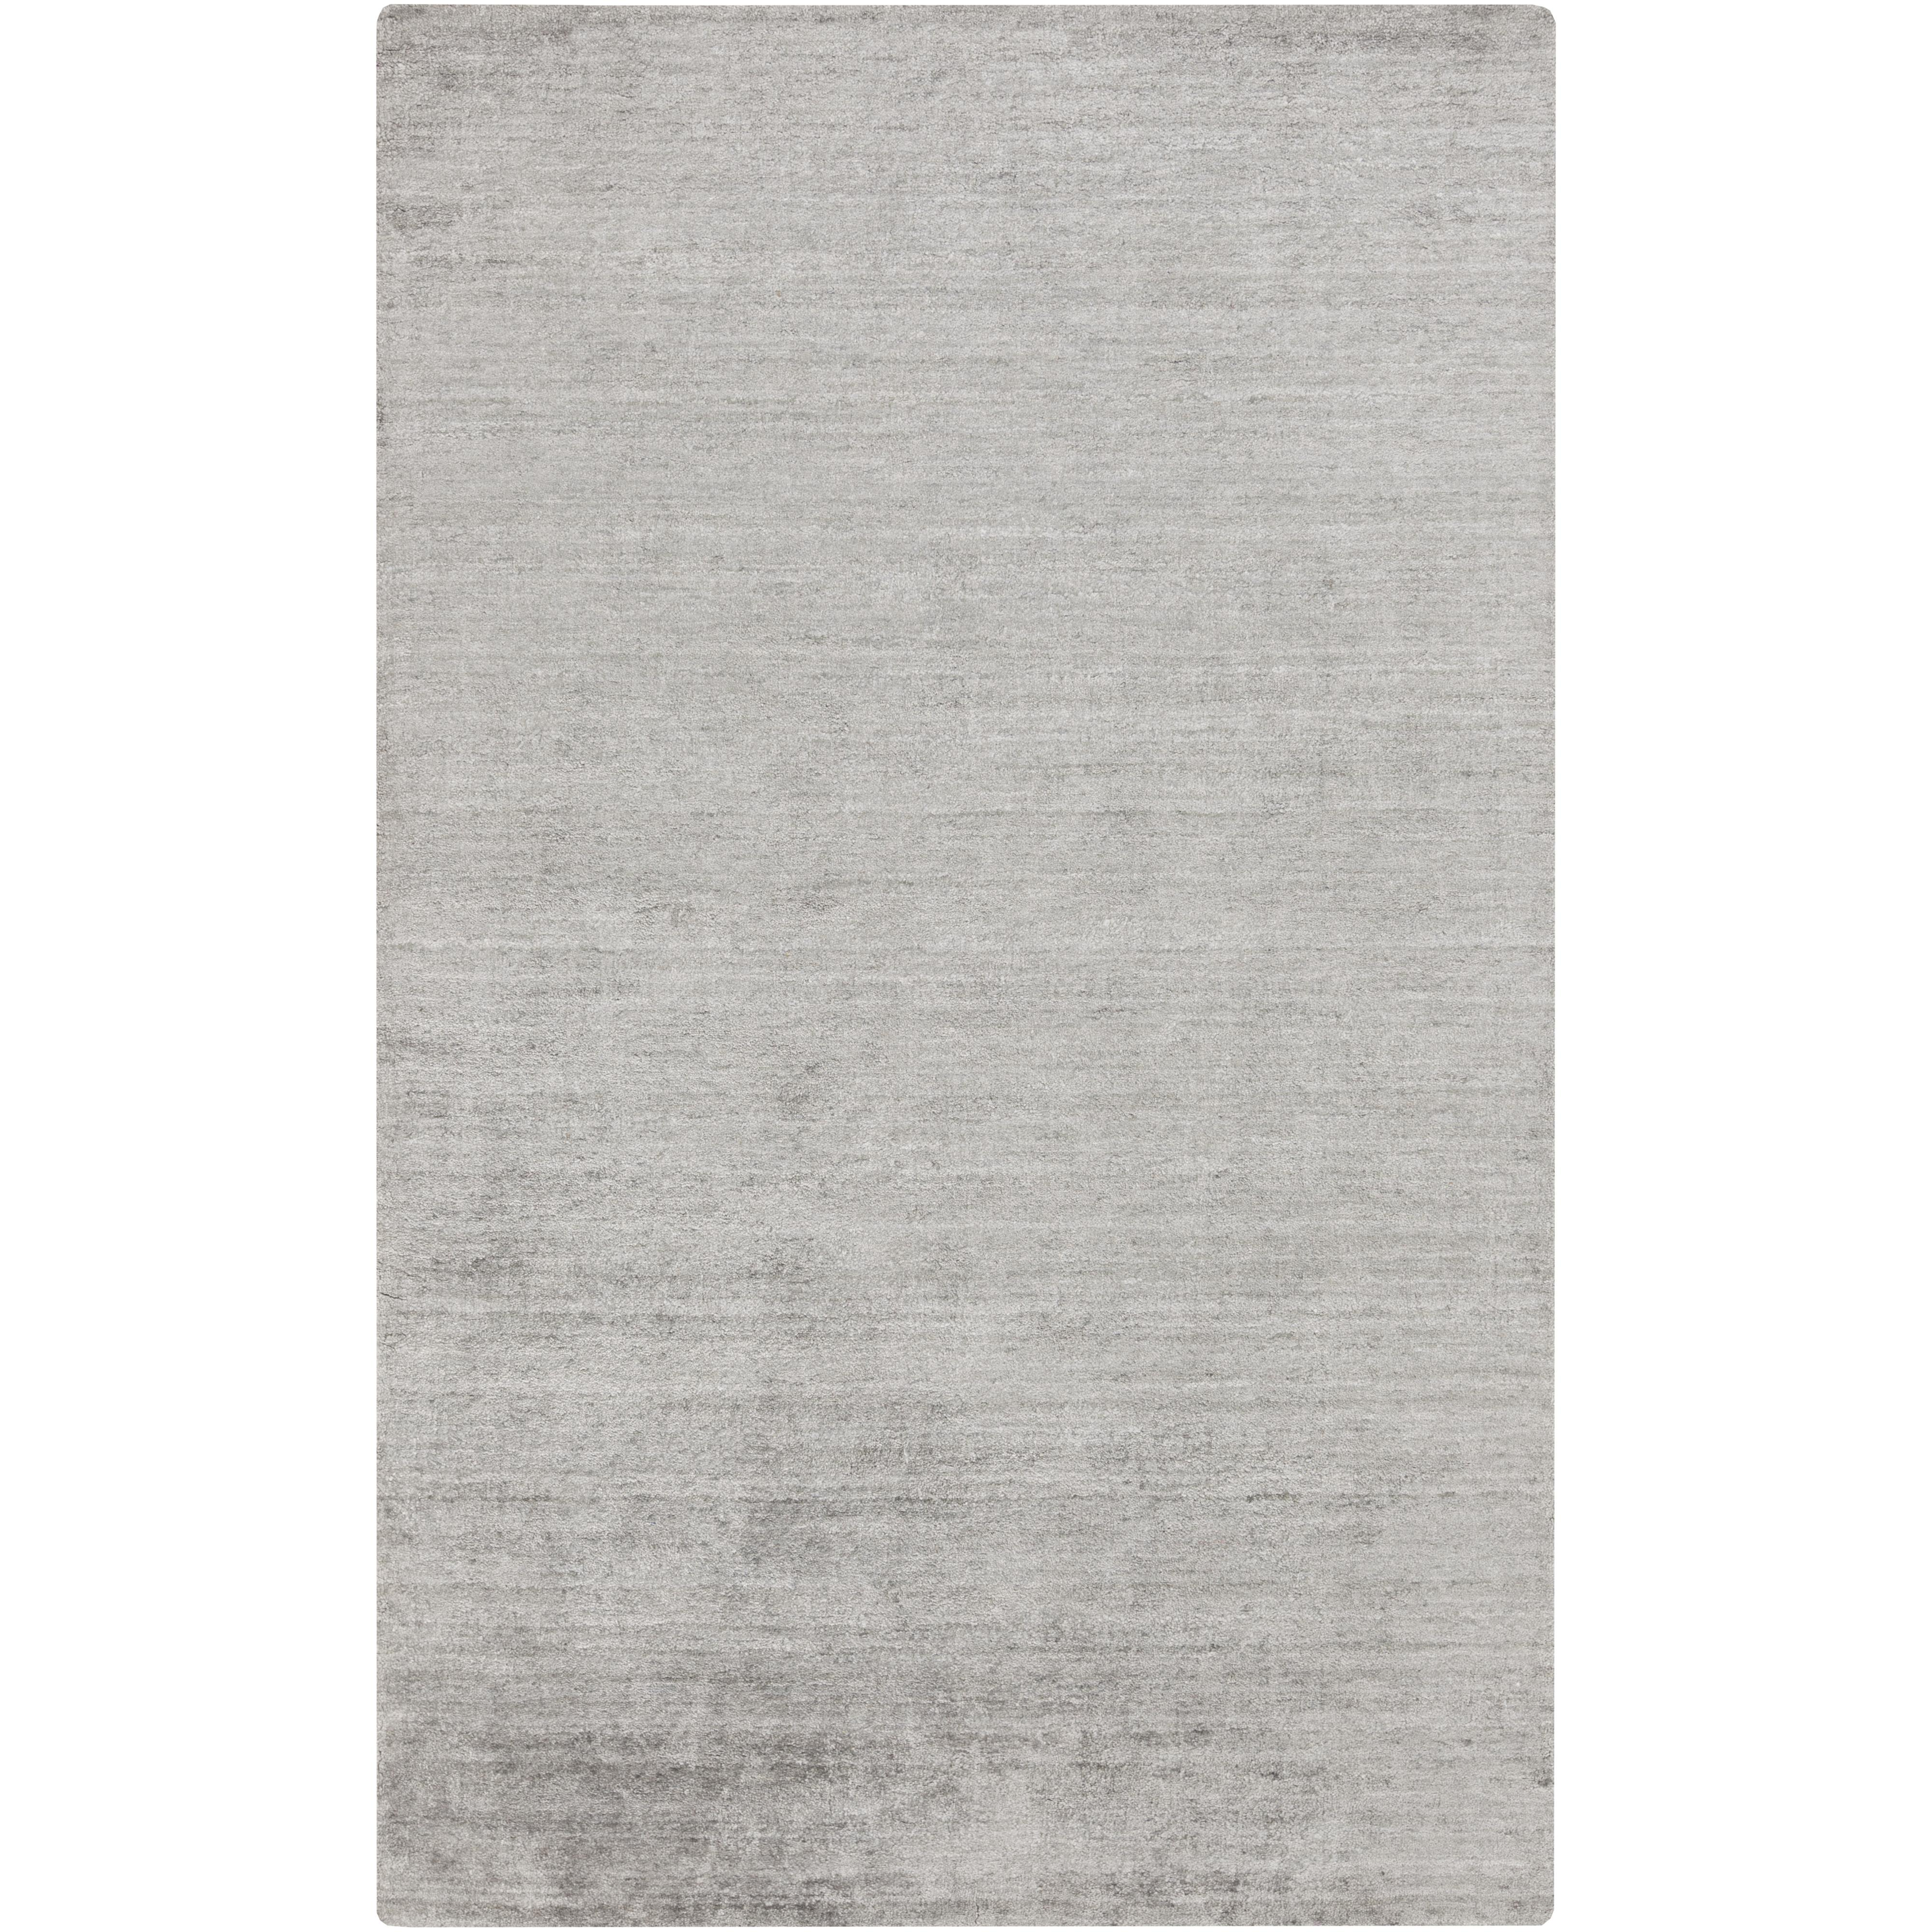 Surya Rugs Haize 5' x 8' - Item Number: HAZ6012-58